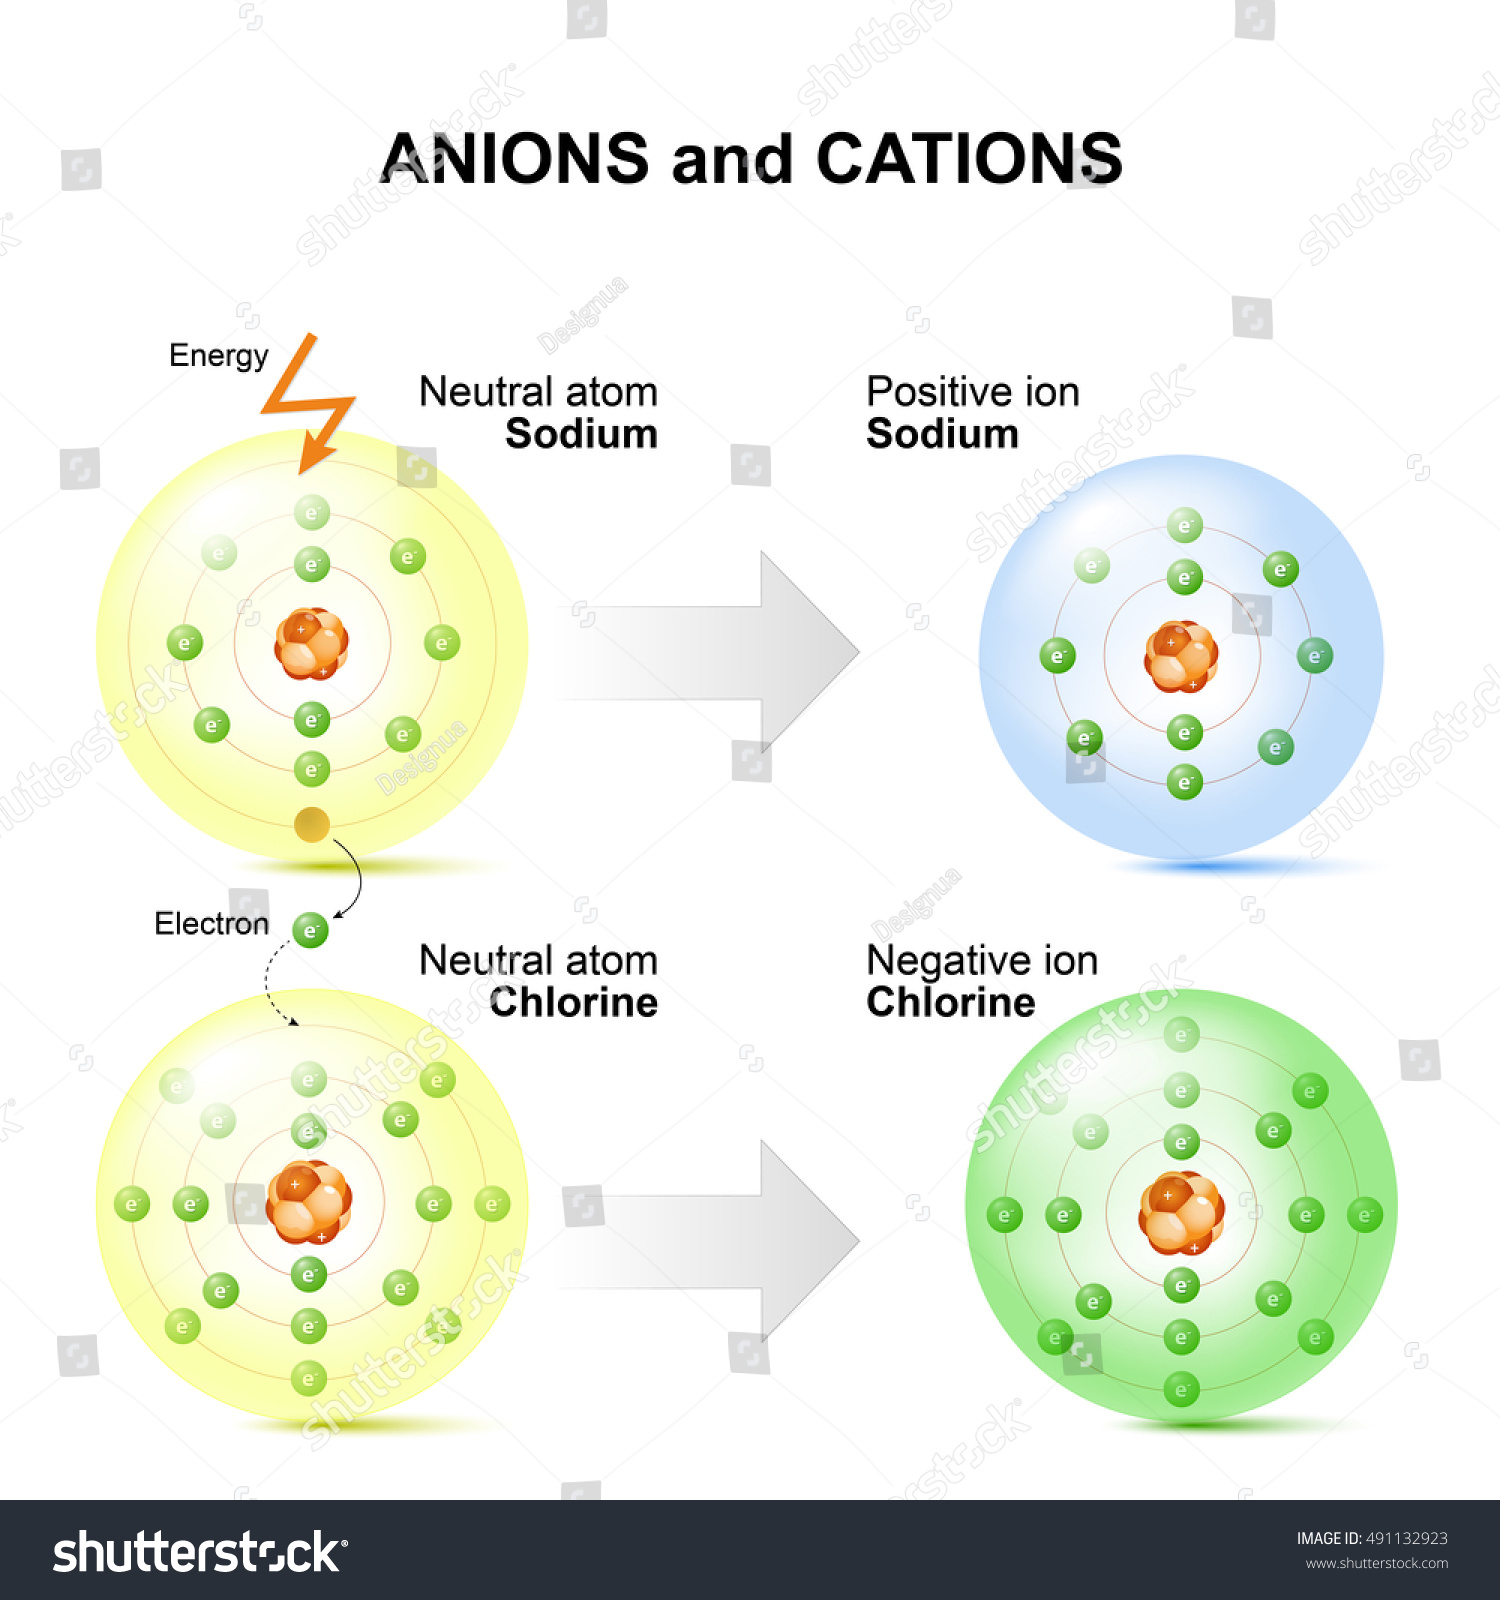 cations and anion lab Chemistry lab report  qualitative solubility results conductivity results anion cation results results cations can be identified by the flame test.